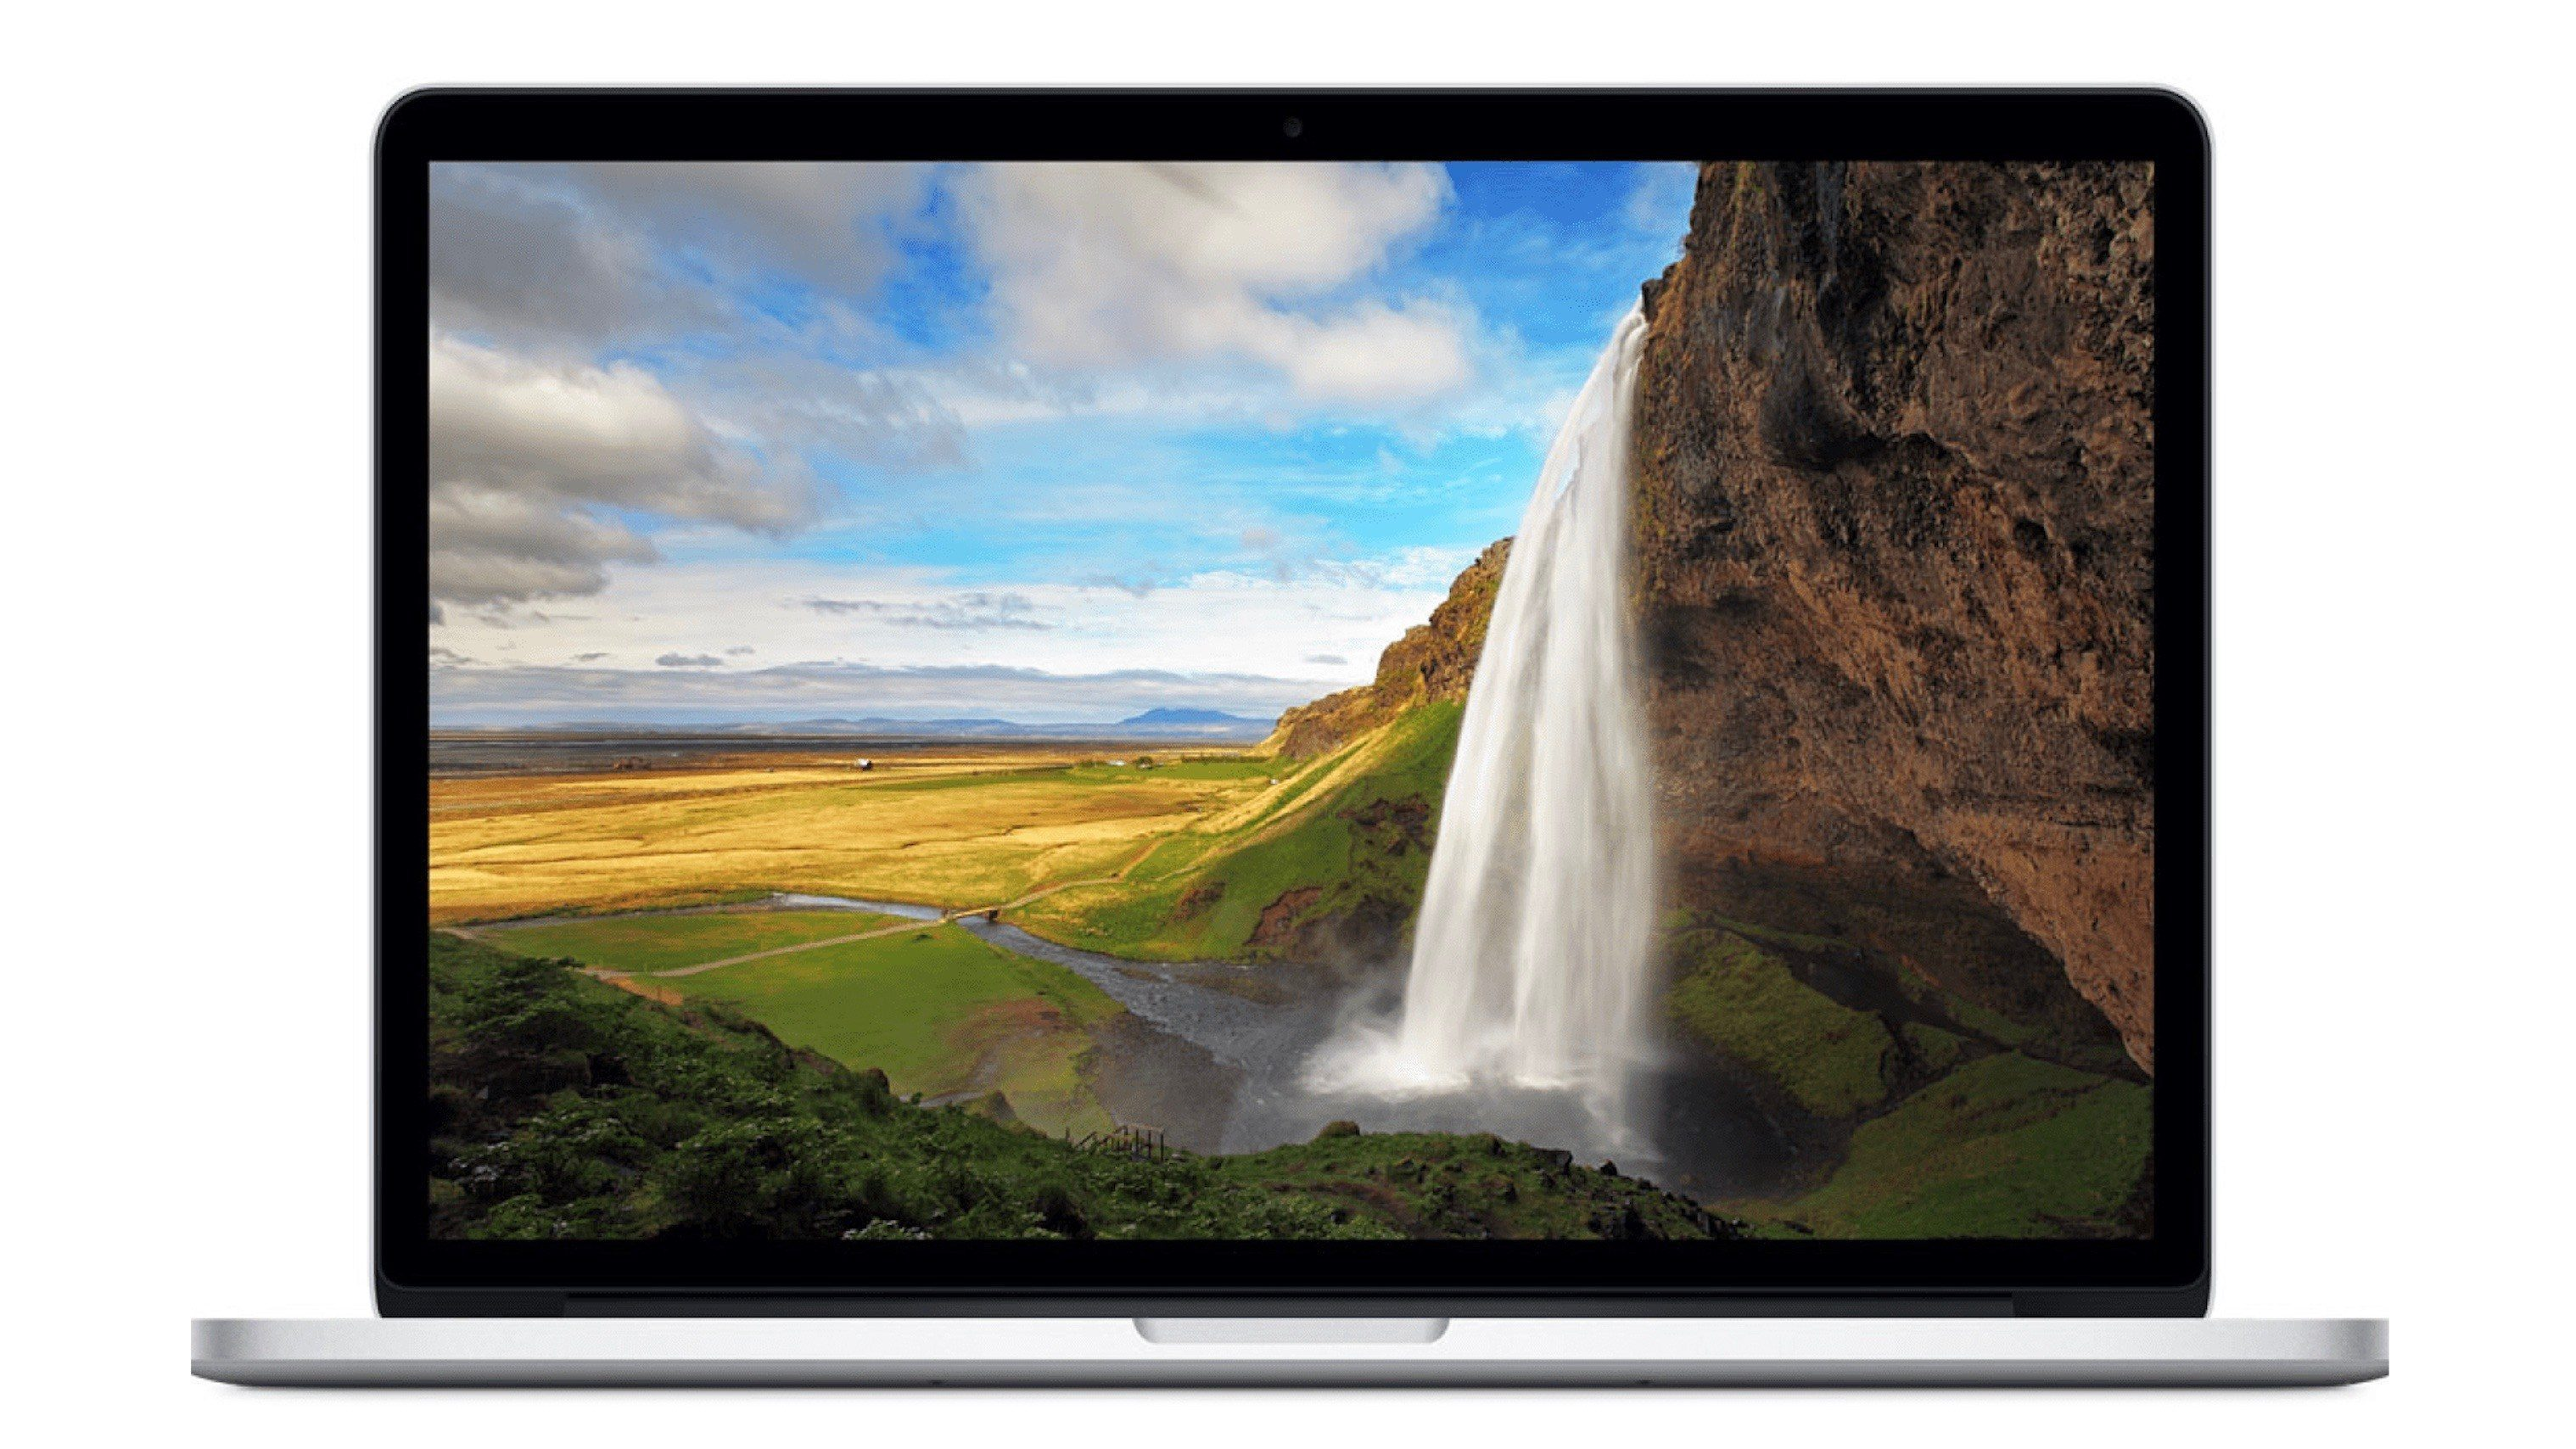 FAA Prohibits Recalled MacBook Pros on Flights due to Fire Risk